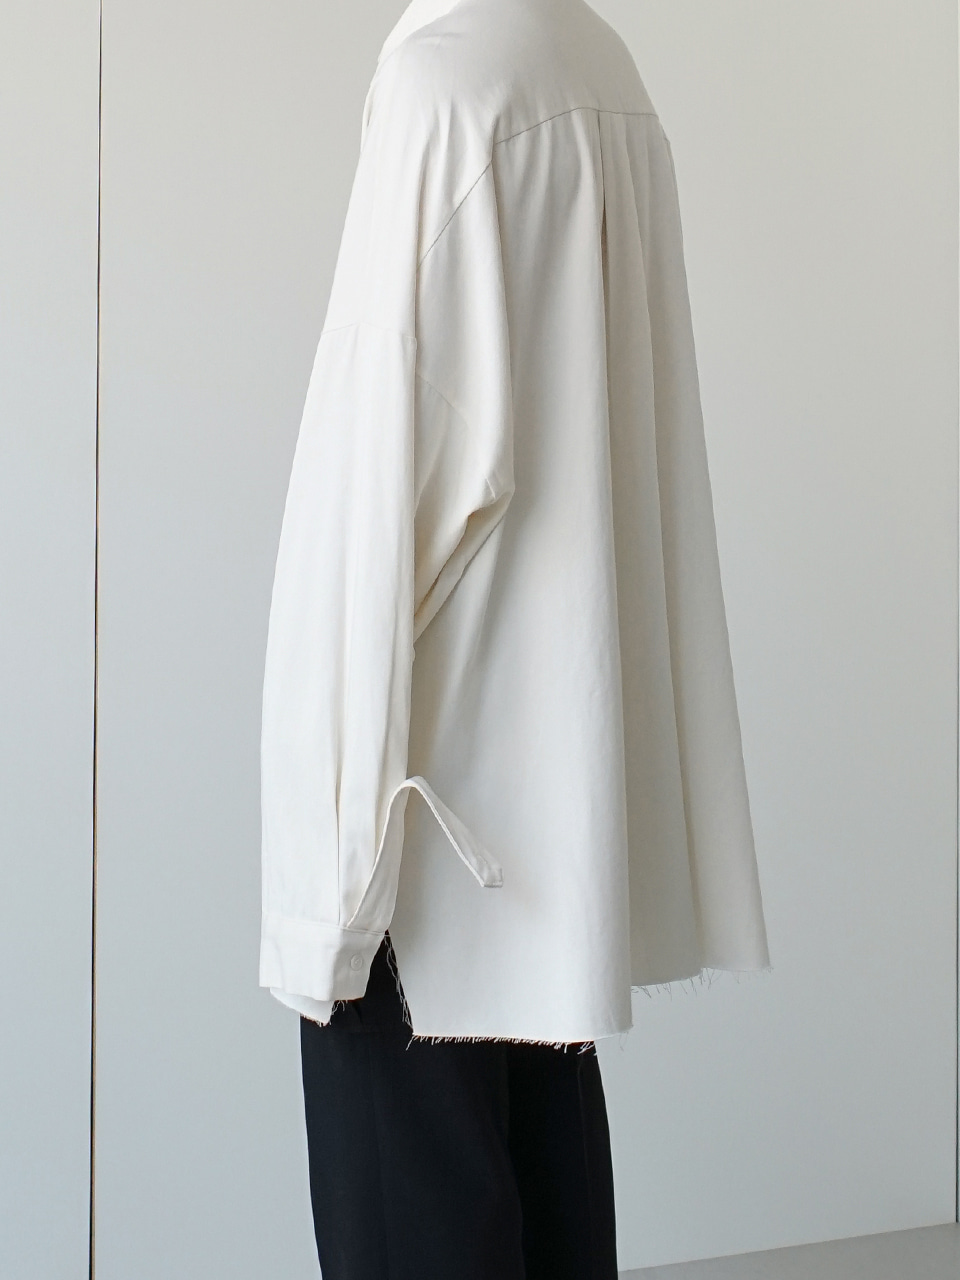 Mago Raw Cut Oversized Shirt (4color)